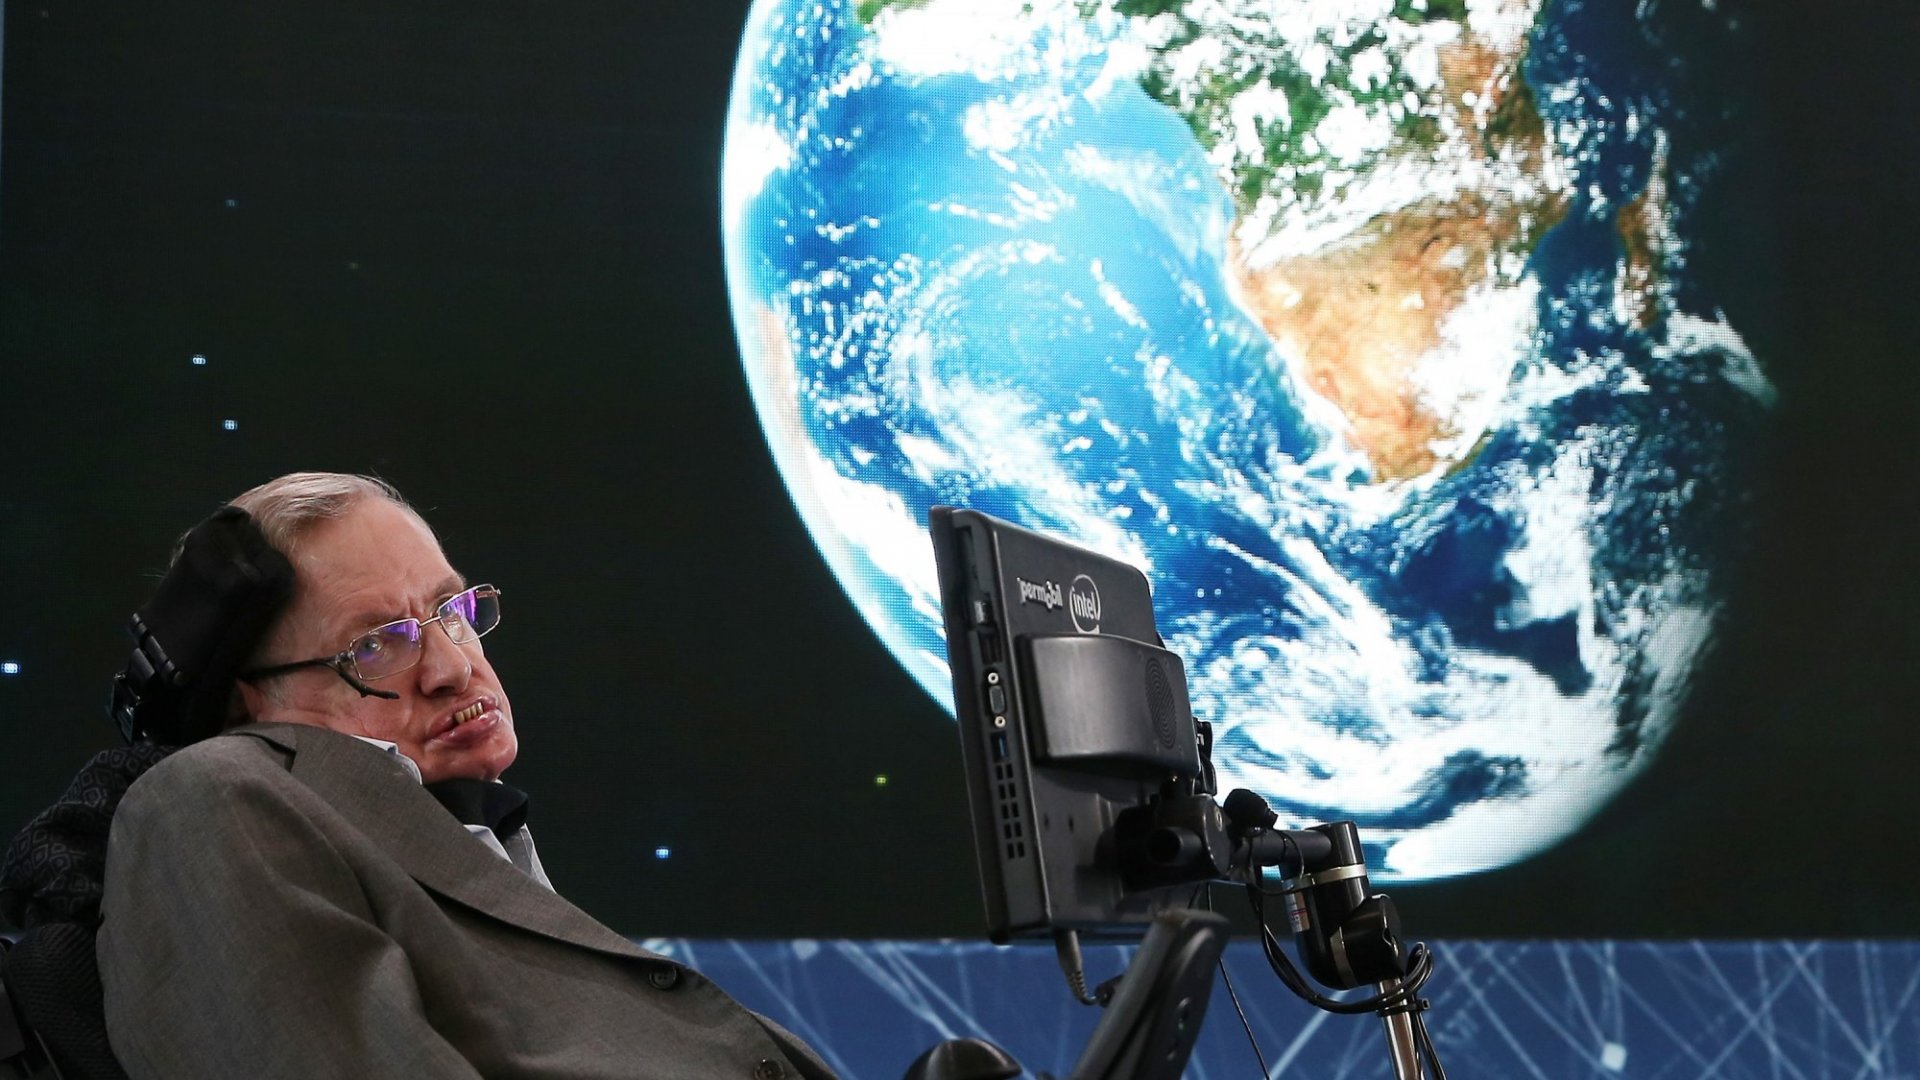 Stephen Hawking Spent the Last Years of His Life Warning Us About the Future of A.I.